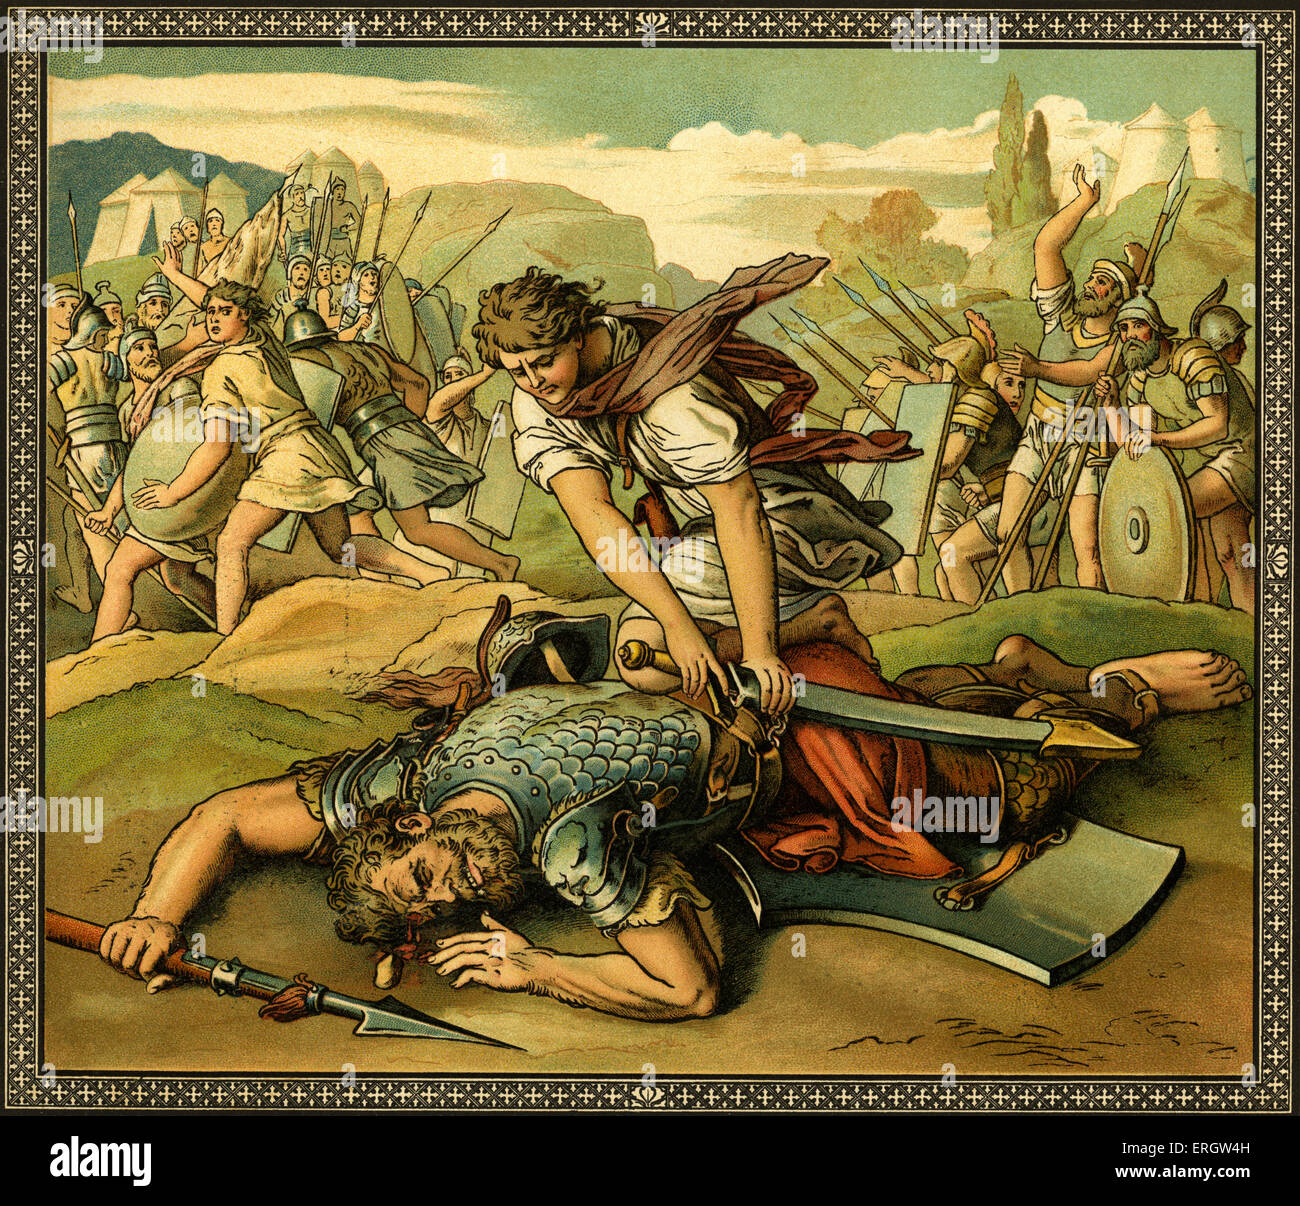 beowulf david and goliath Free essays & term papers - old testament allusions in beowulf, english.